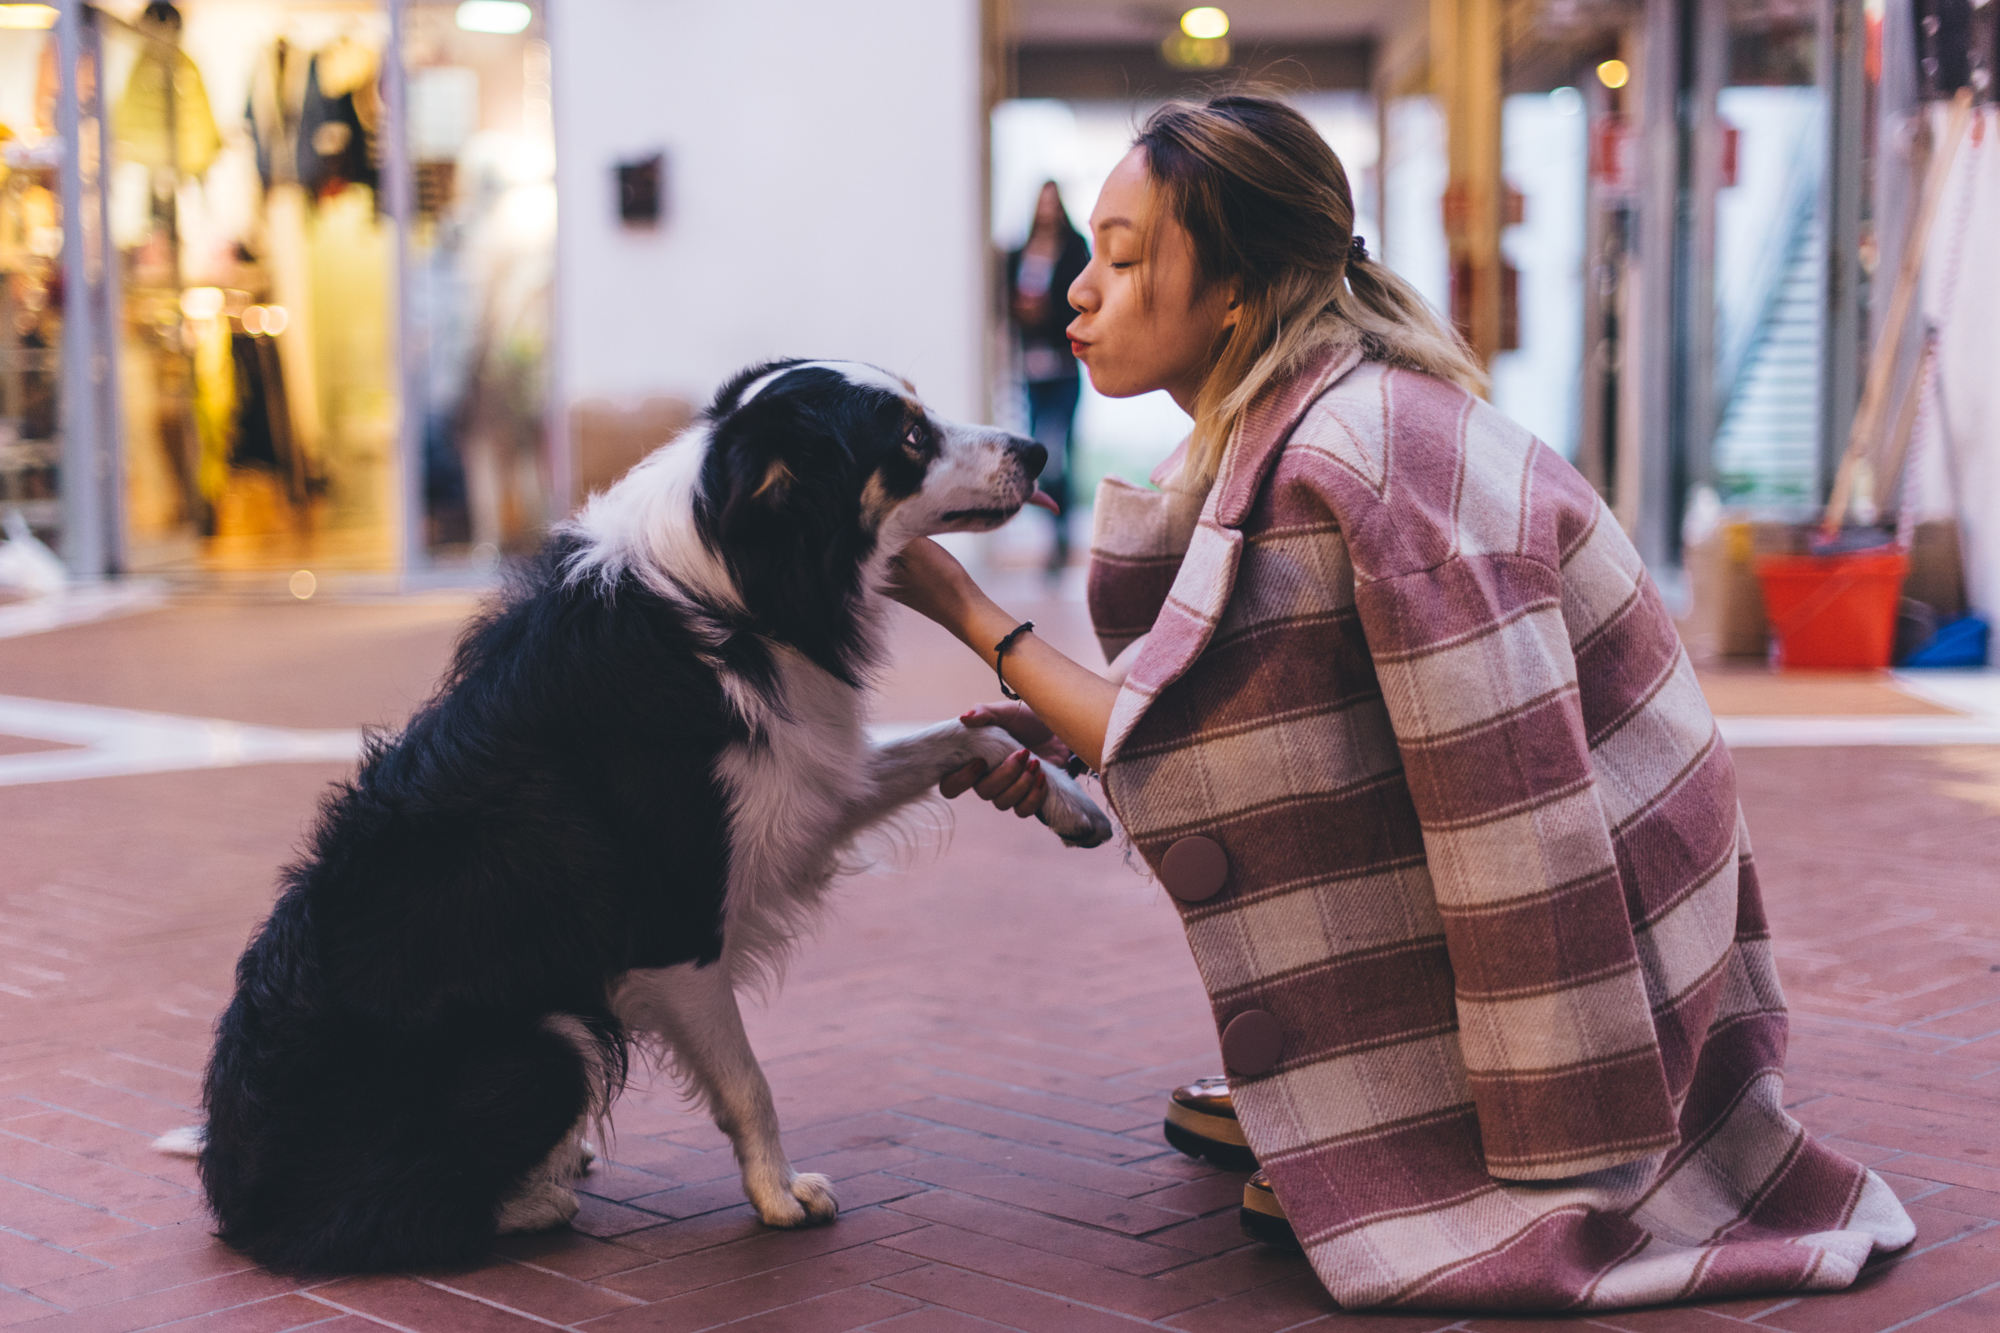 Prato, November 2016. Gaya Ji, a young Chinese-Italian actress and fashion blogger with her dog Jackie. Gaya is a prominent member of the youngest Chinese-Italian generation and often takes part in many artistic projects and events related to the Chinese community, gaining a small, but trusted follow and praise among her friends and citizens from Prato